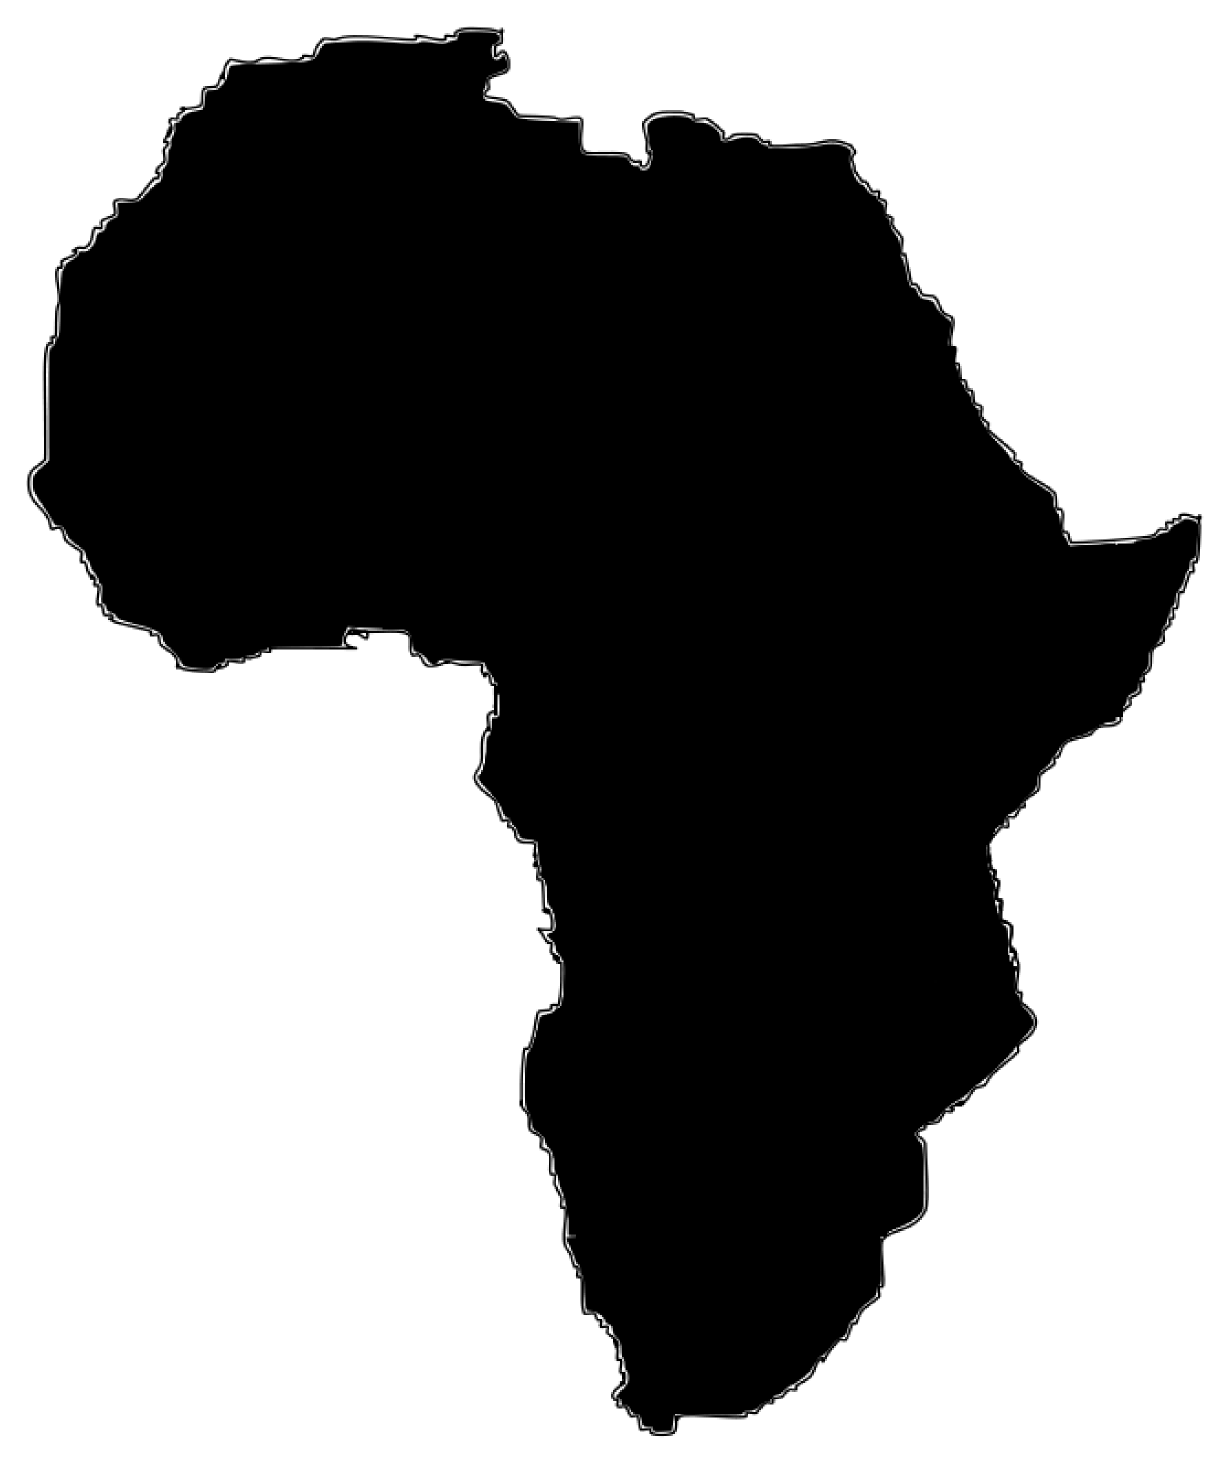 Africa clipart #10, Download drawings